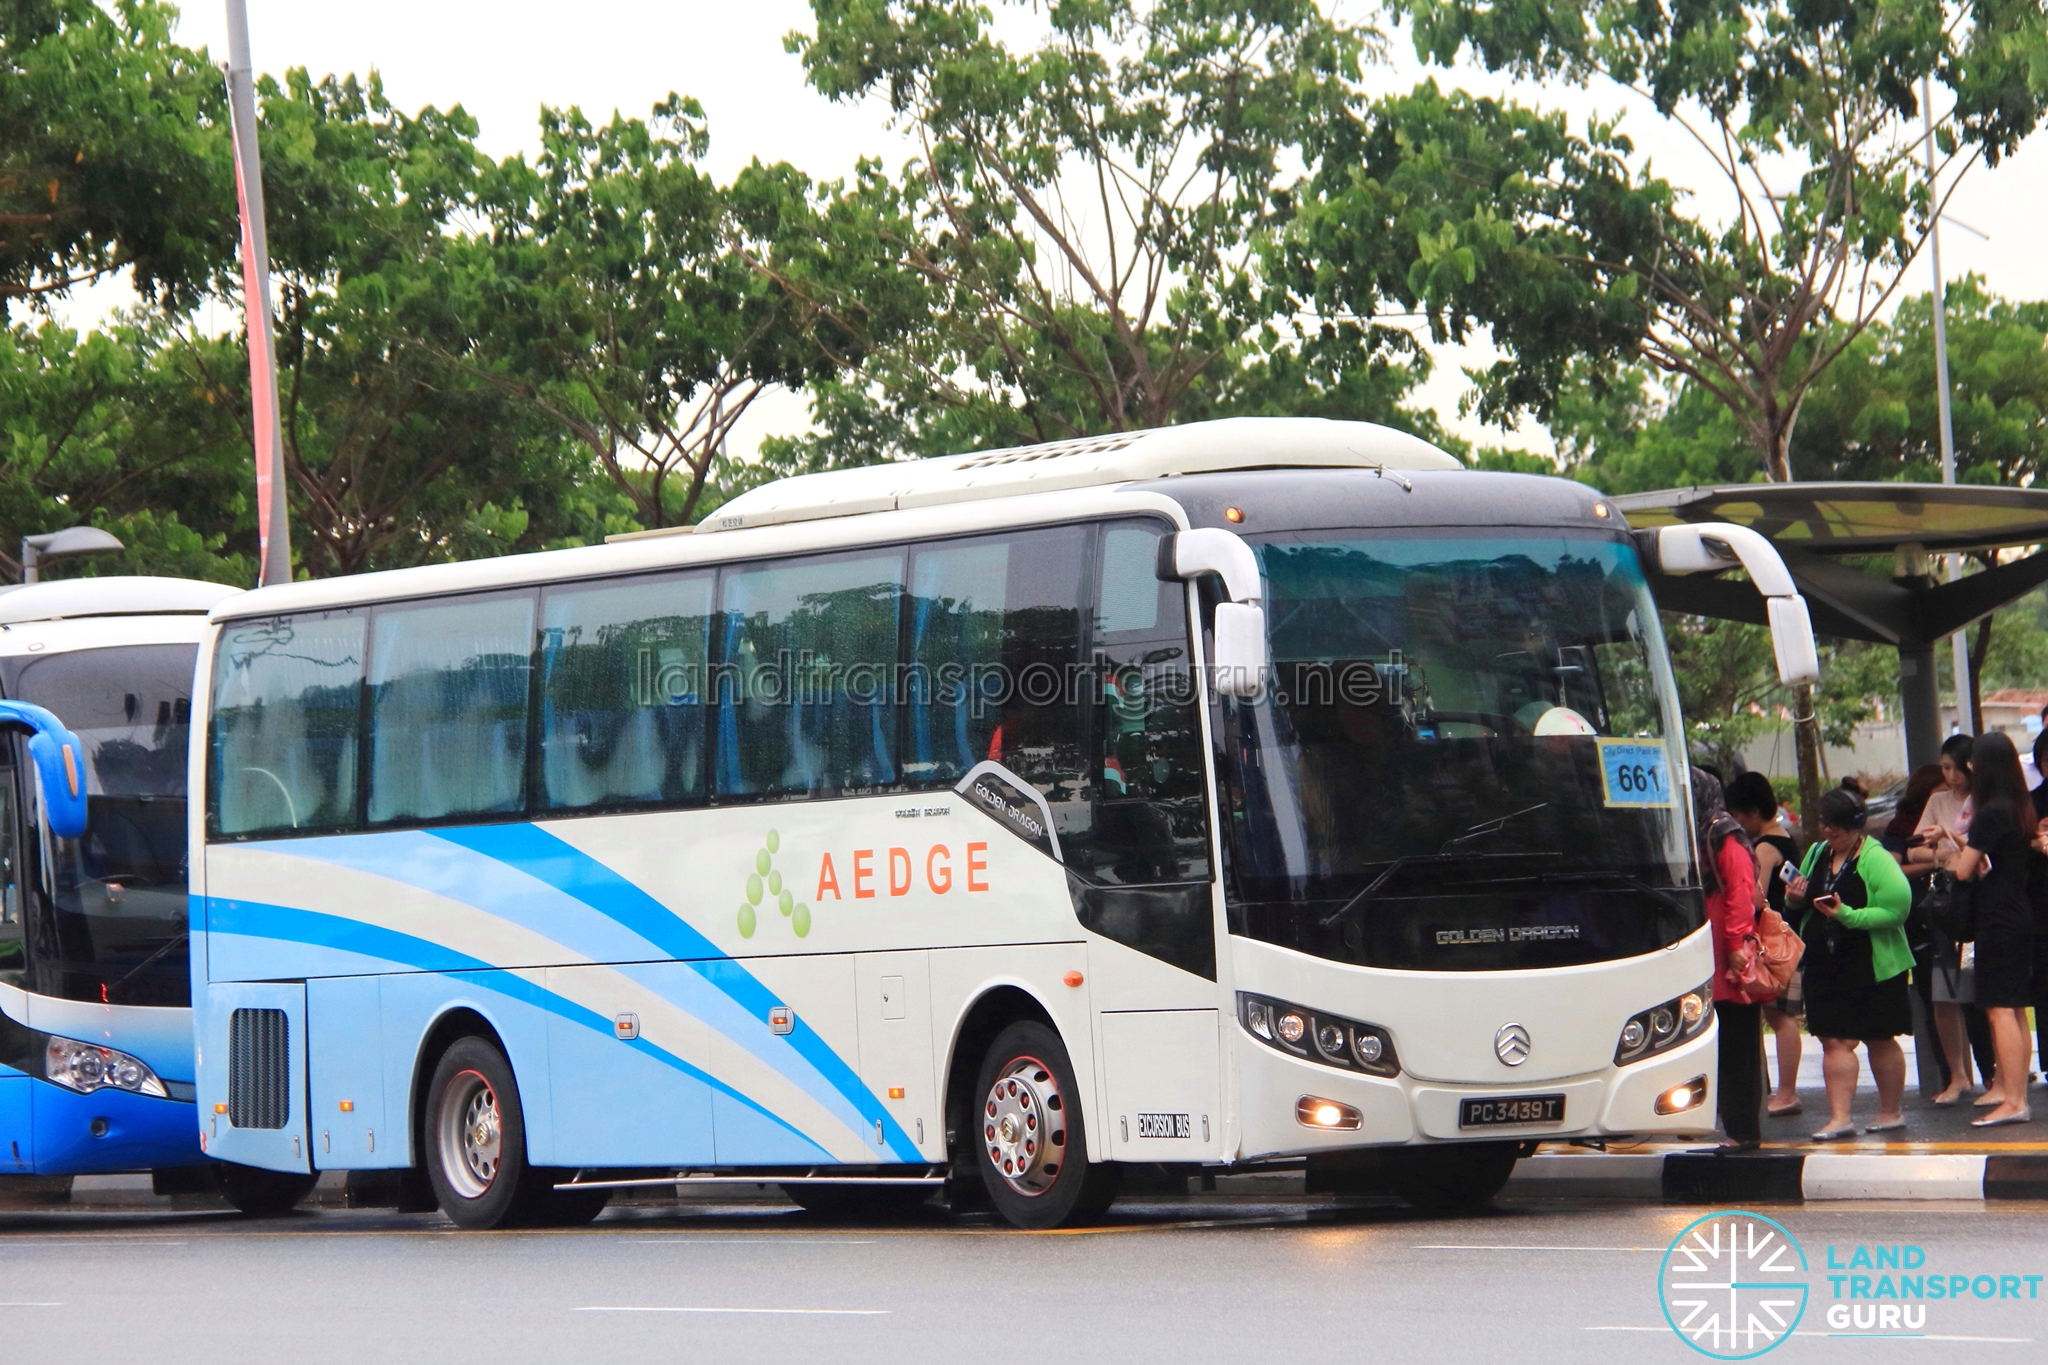 Aedge Holdings Golden Dragon XML6957J14B (PC3439T) - City Direct 661